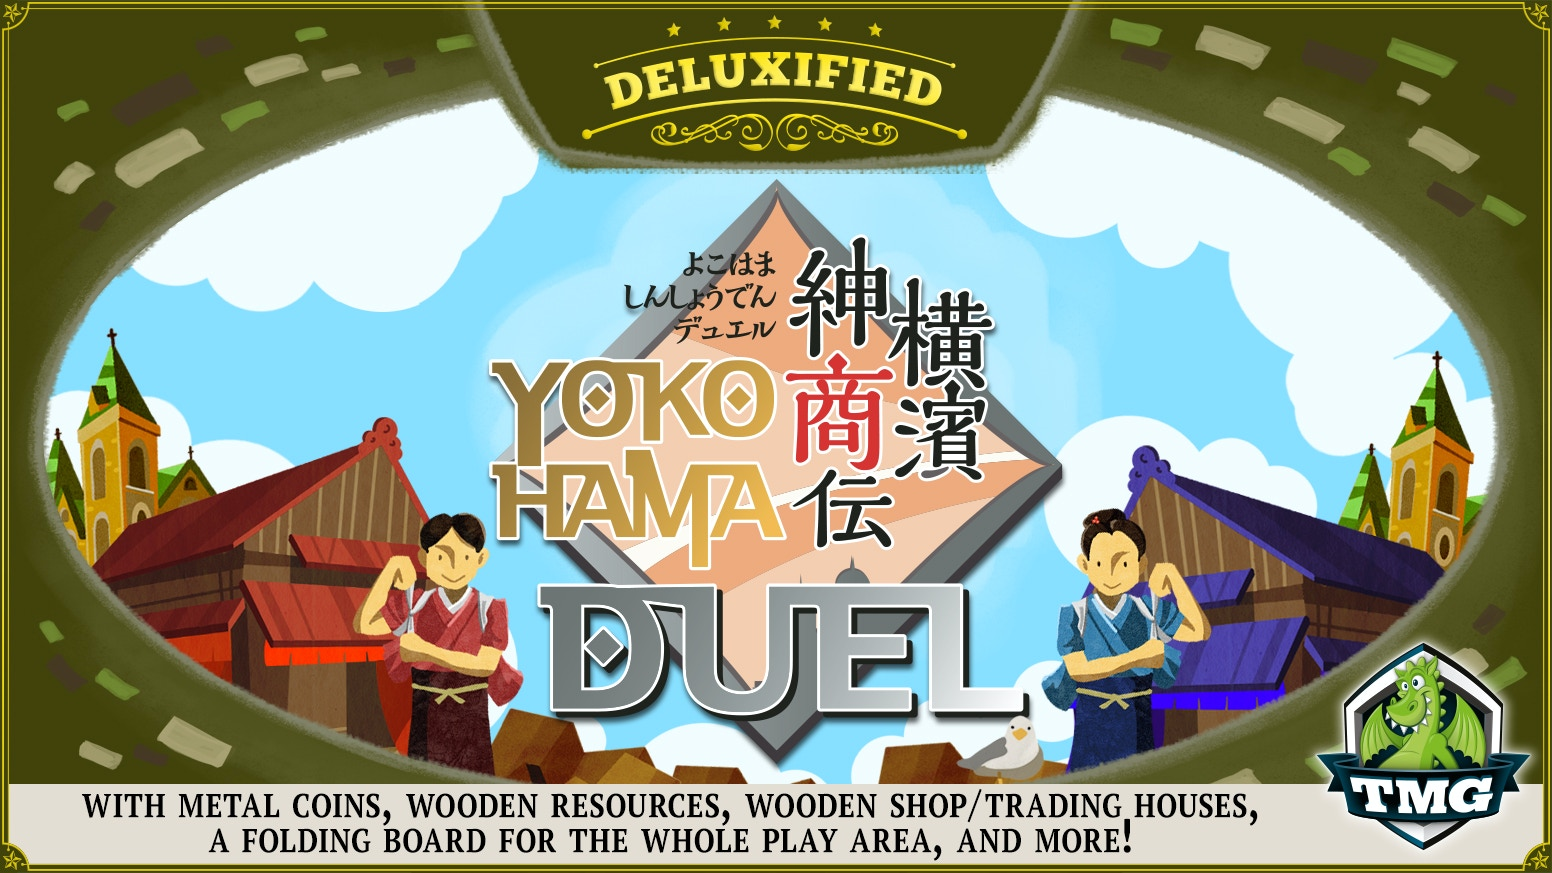 Tasty Minstrel Games presents Hisashi Hayashi's Yokohama Duel - presented in glorious Deluxified™ fashion!